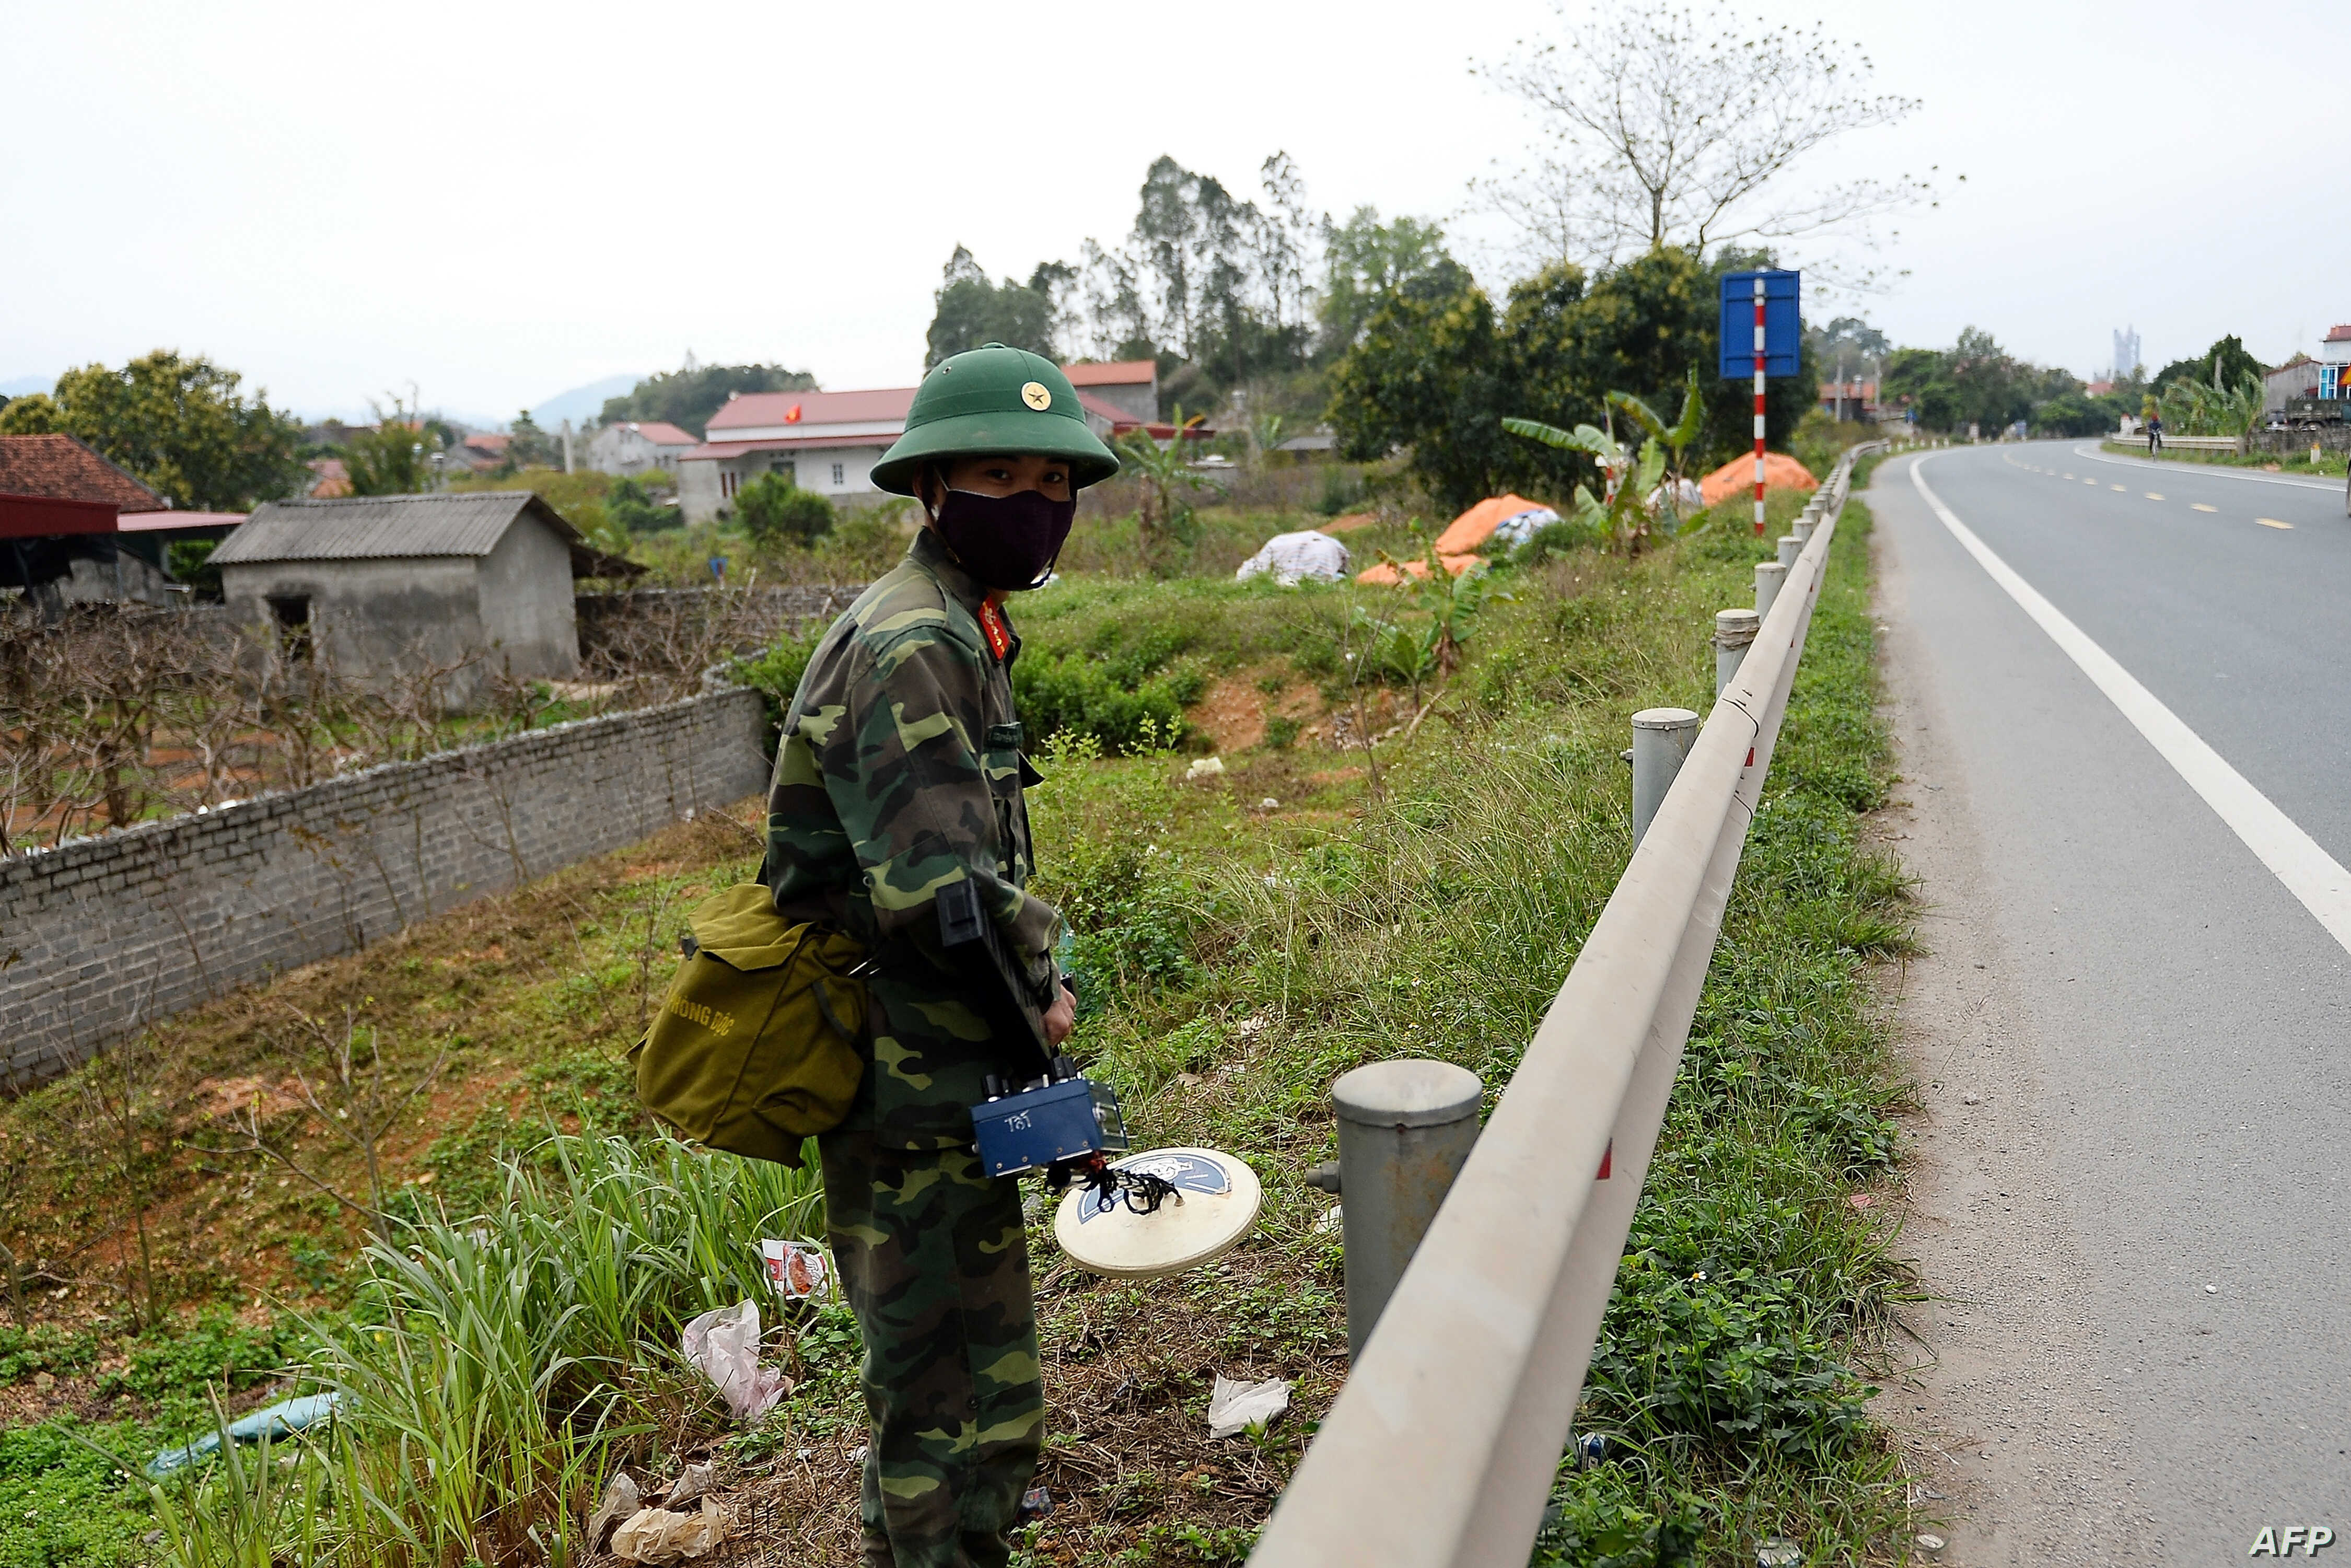 Vietnamese military personnel uses a mine-sweeper while patrolling the road between Hanoi and the Dong Dang railway station near the Chinese border in Lang Son province, Feb. 23, 2019.